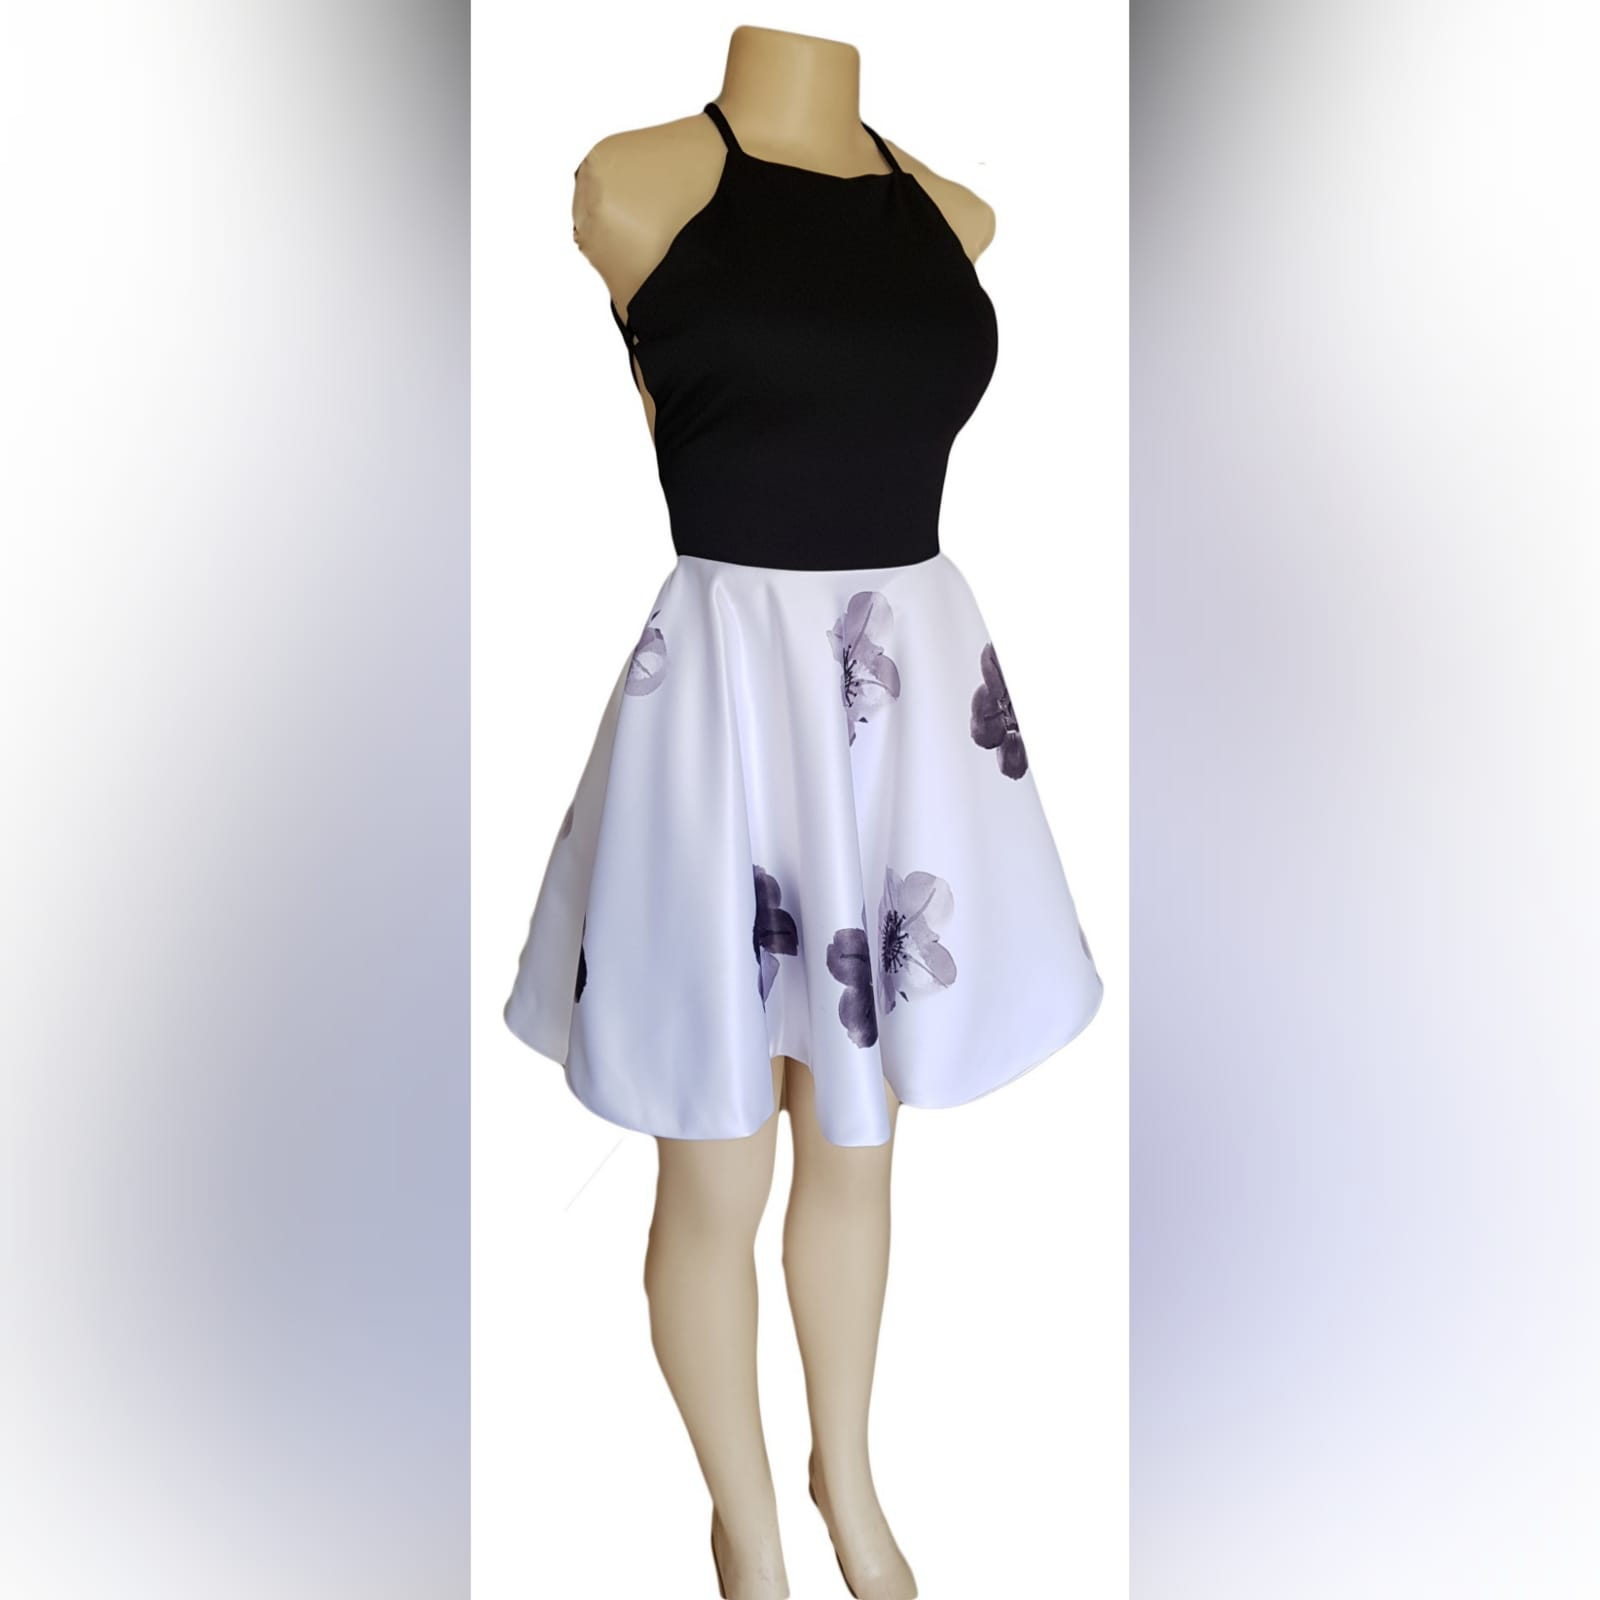 Black and white short open back smart casual dress 4 black & white short open back smart casual dress. Flowy bottom with printed flowers, black bodice with strap back lace up detail.